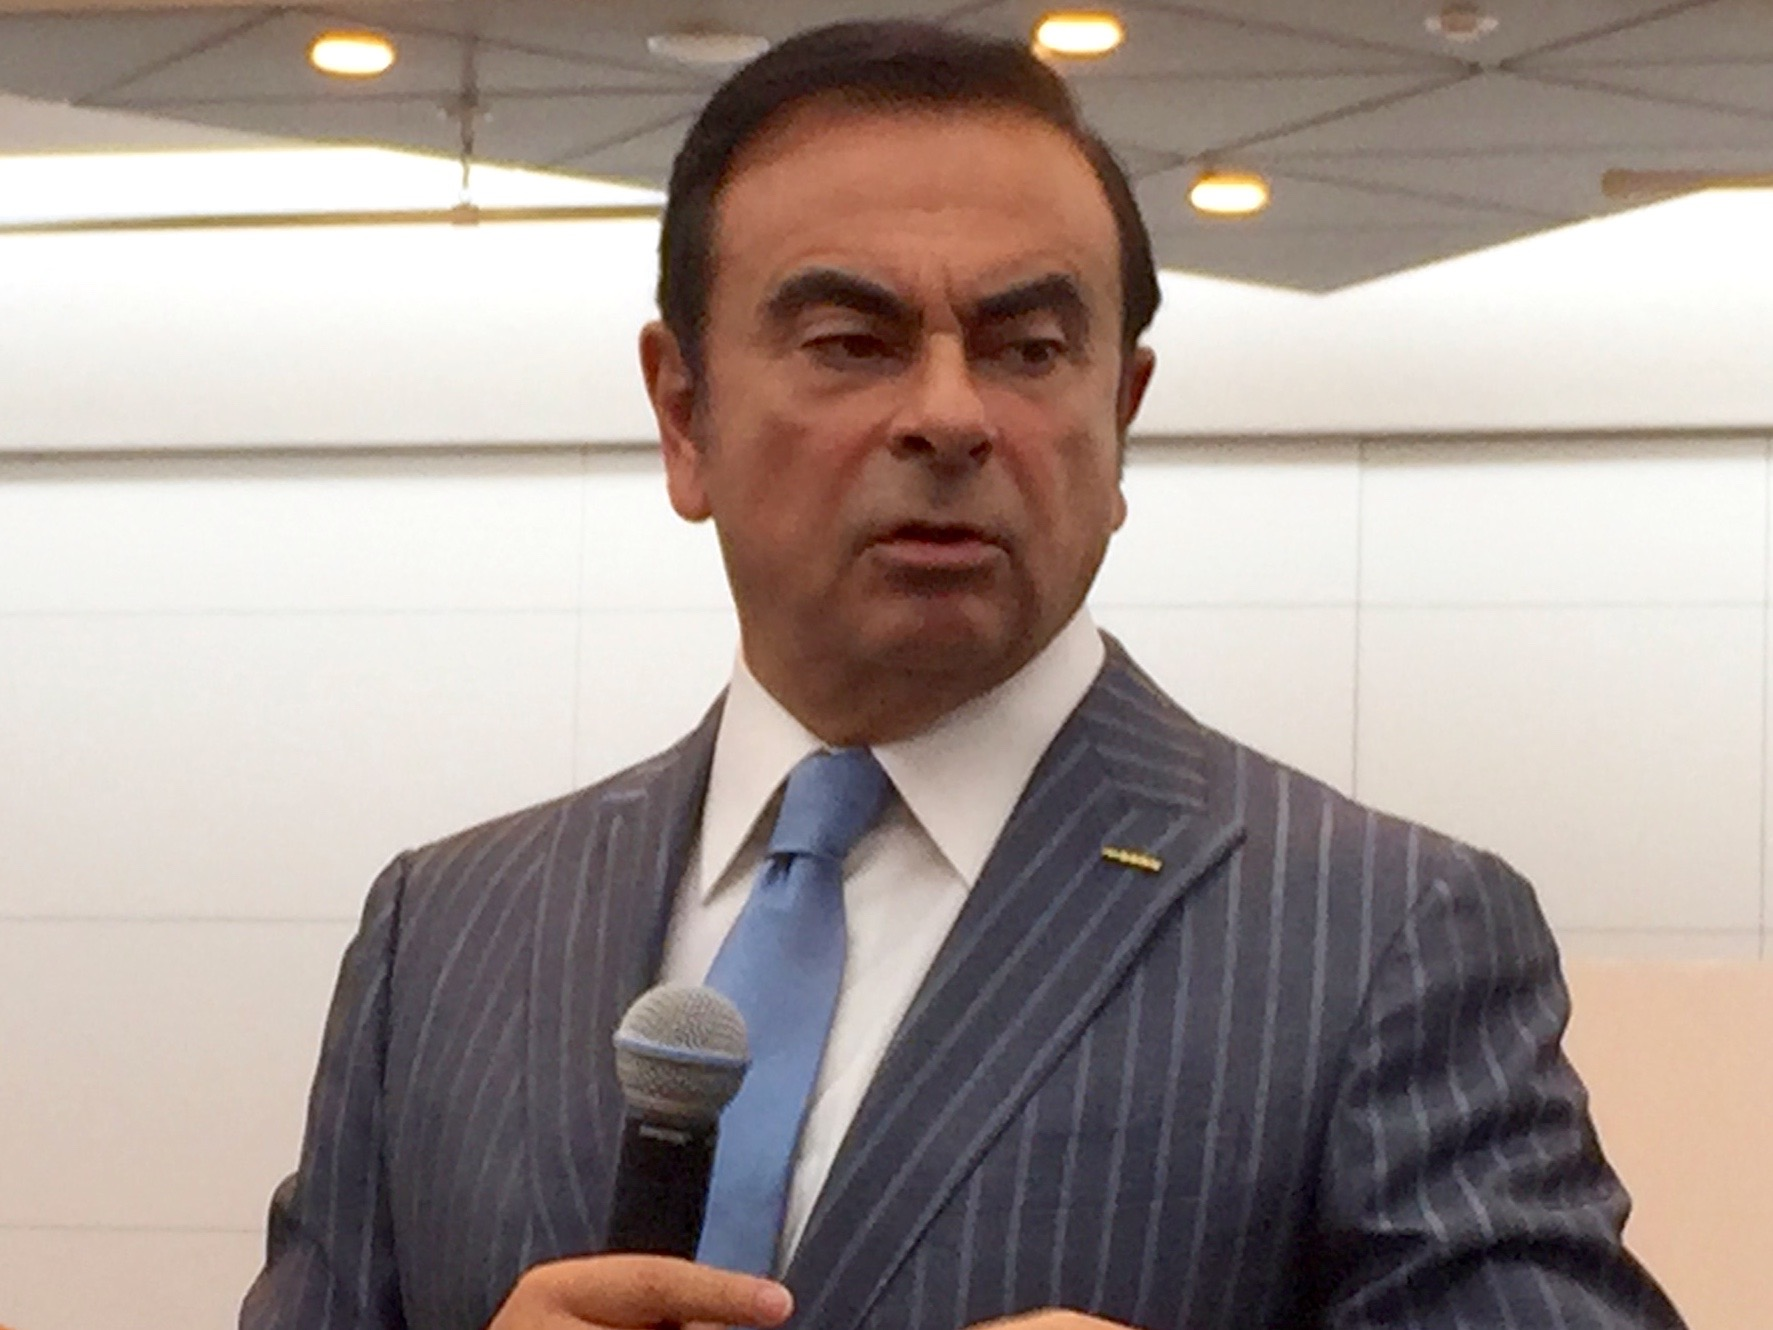 Nissan Chairman Carlos Ghosn reportedly arrested over financial misdealing